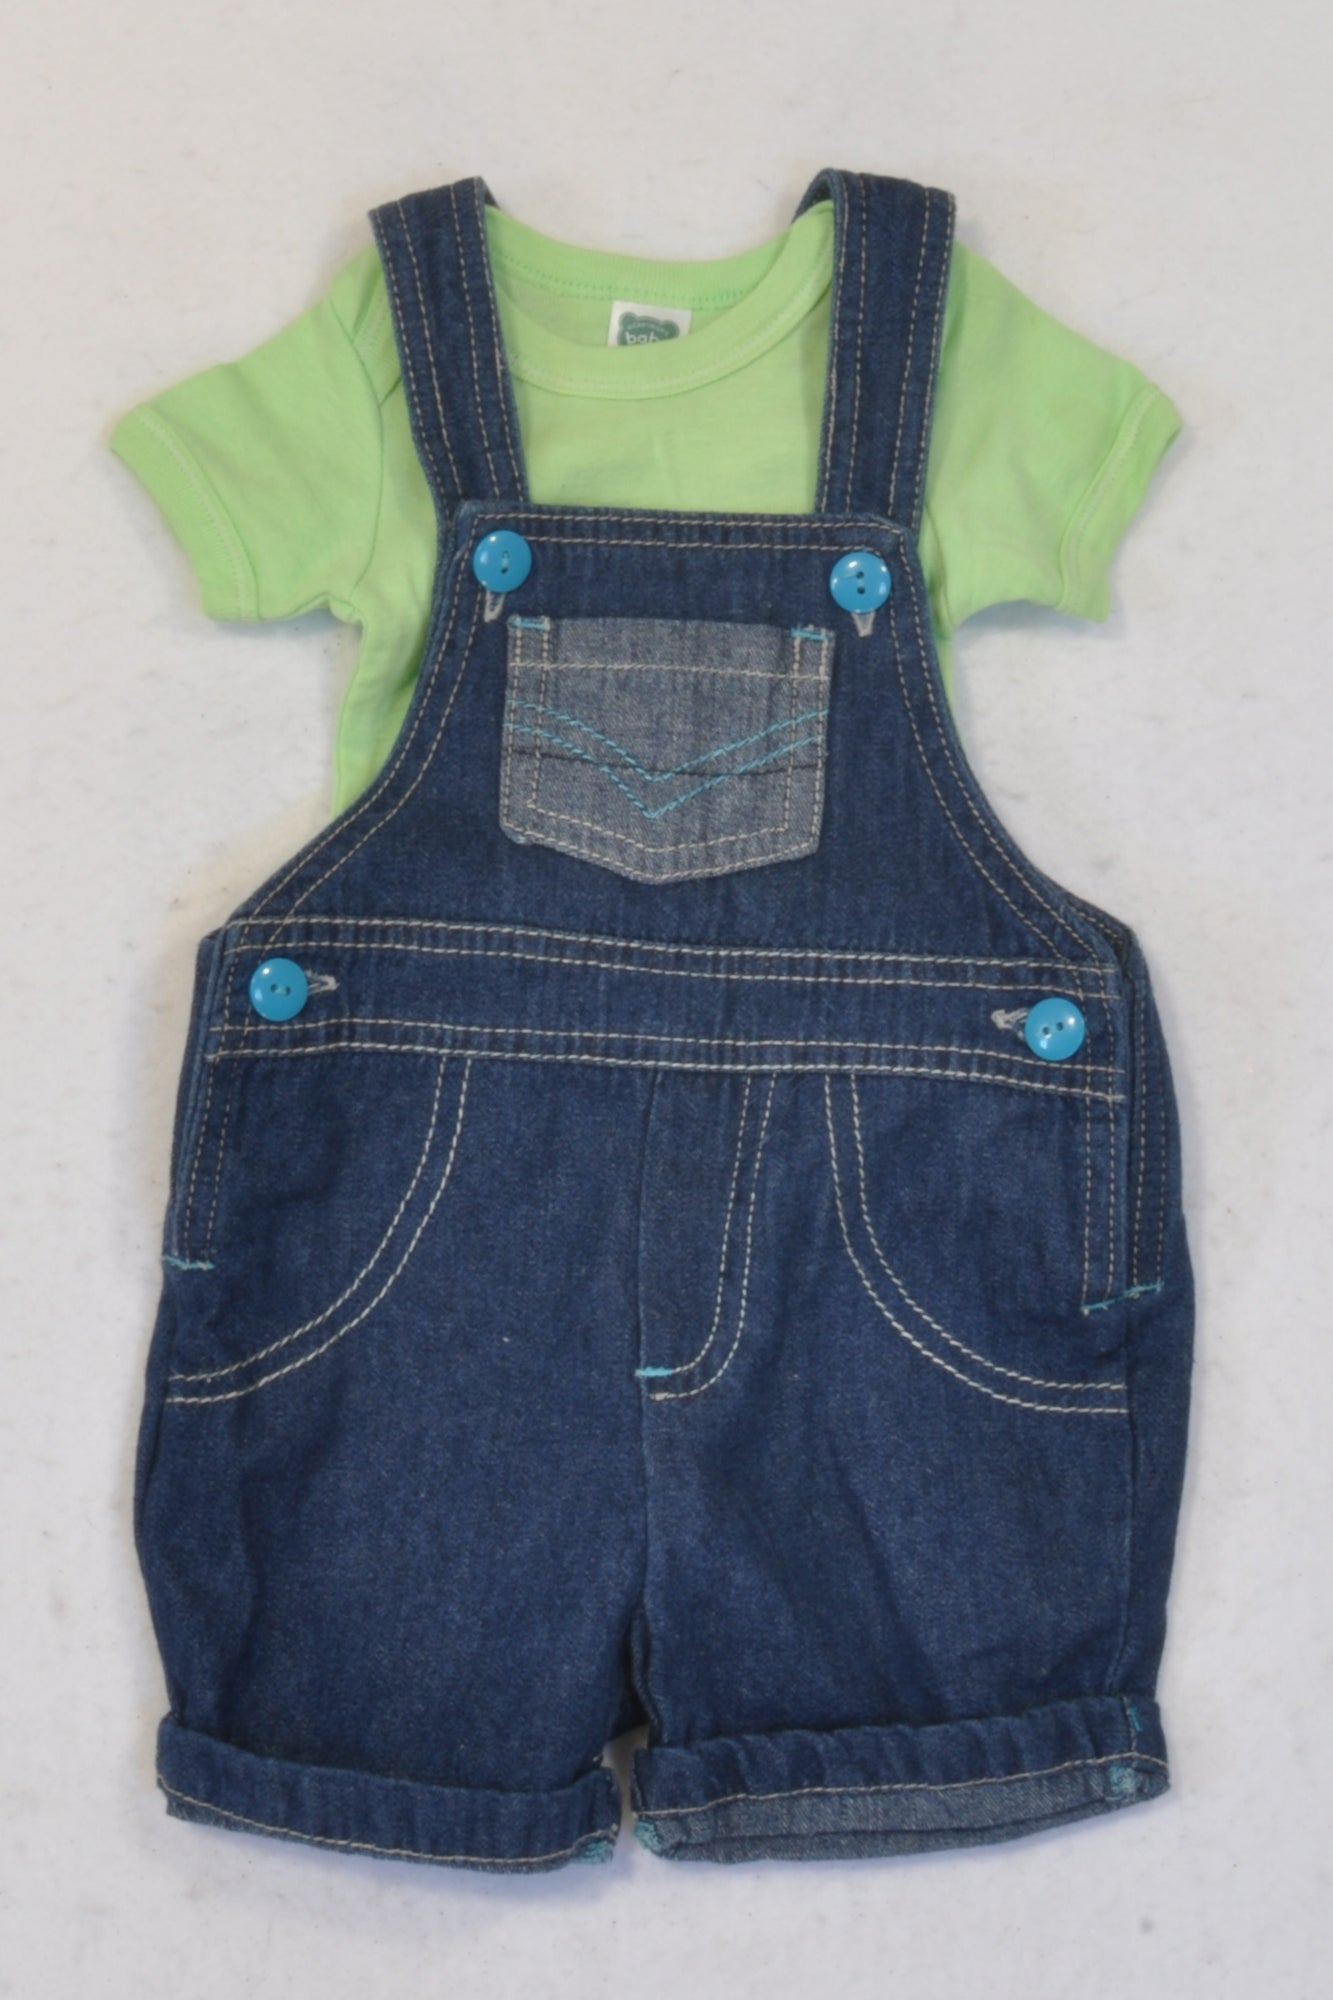 Ackermans Denim Shorts Dungarees & Green T-Shirt Set Boys 0-3 months